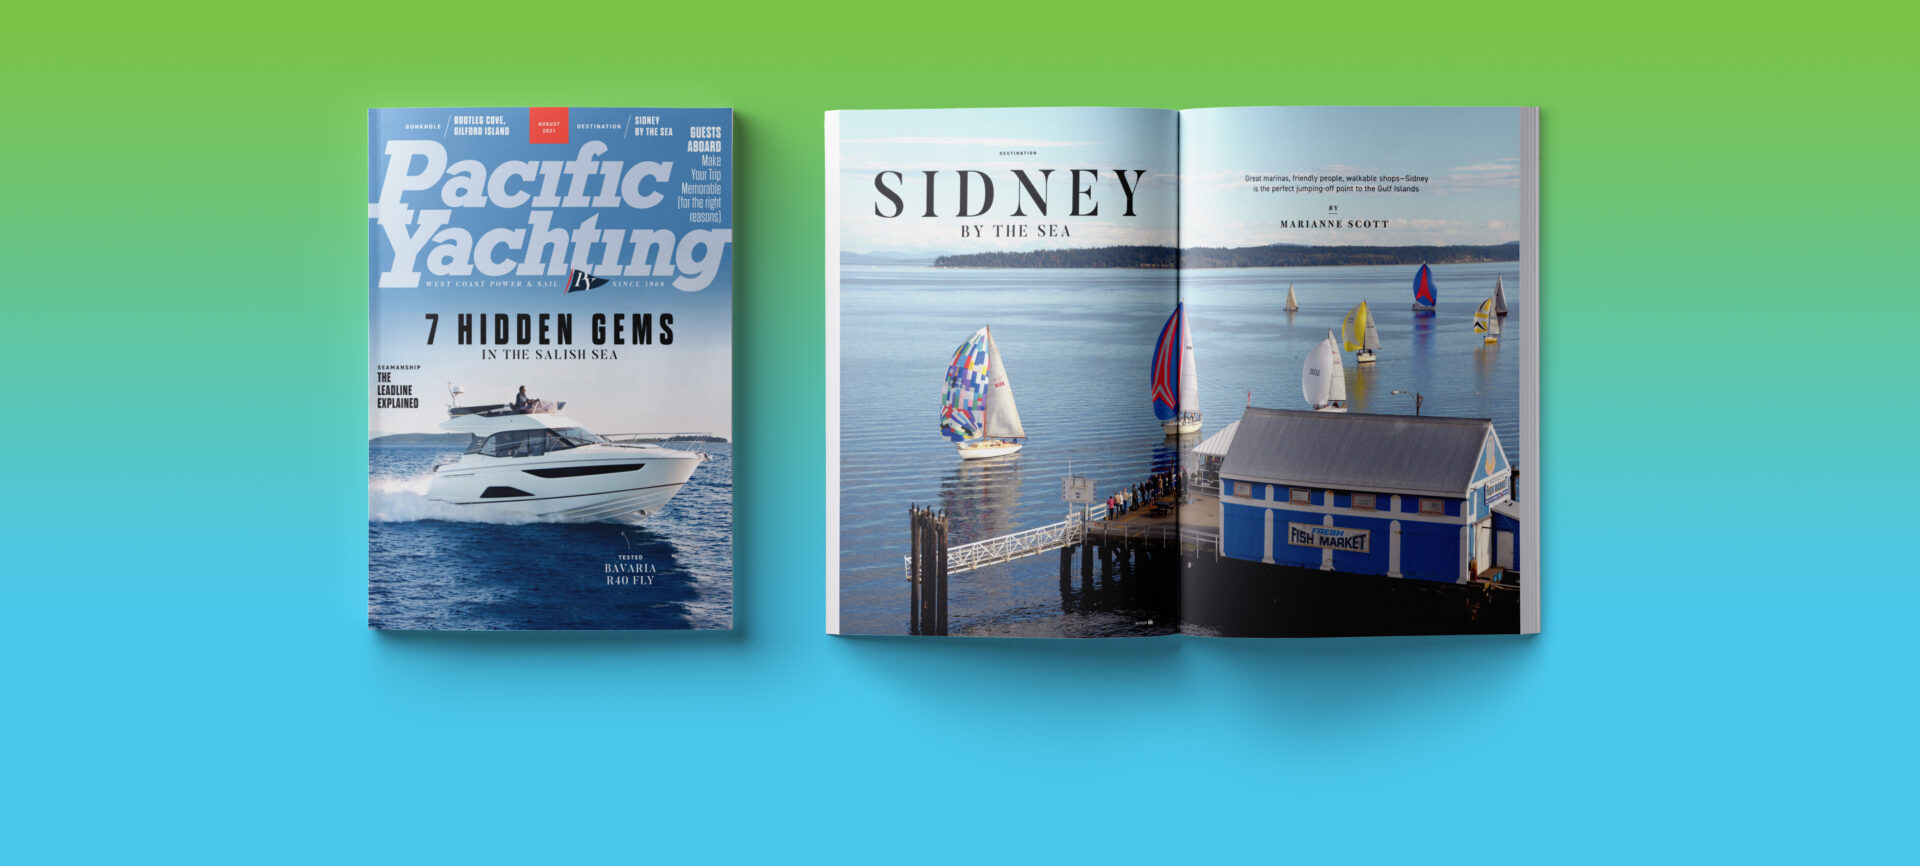 Pacific Yachting August 2021 issue.